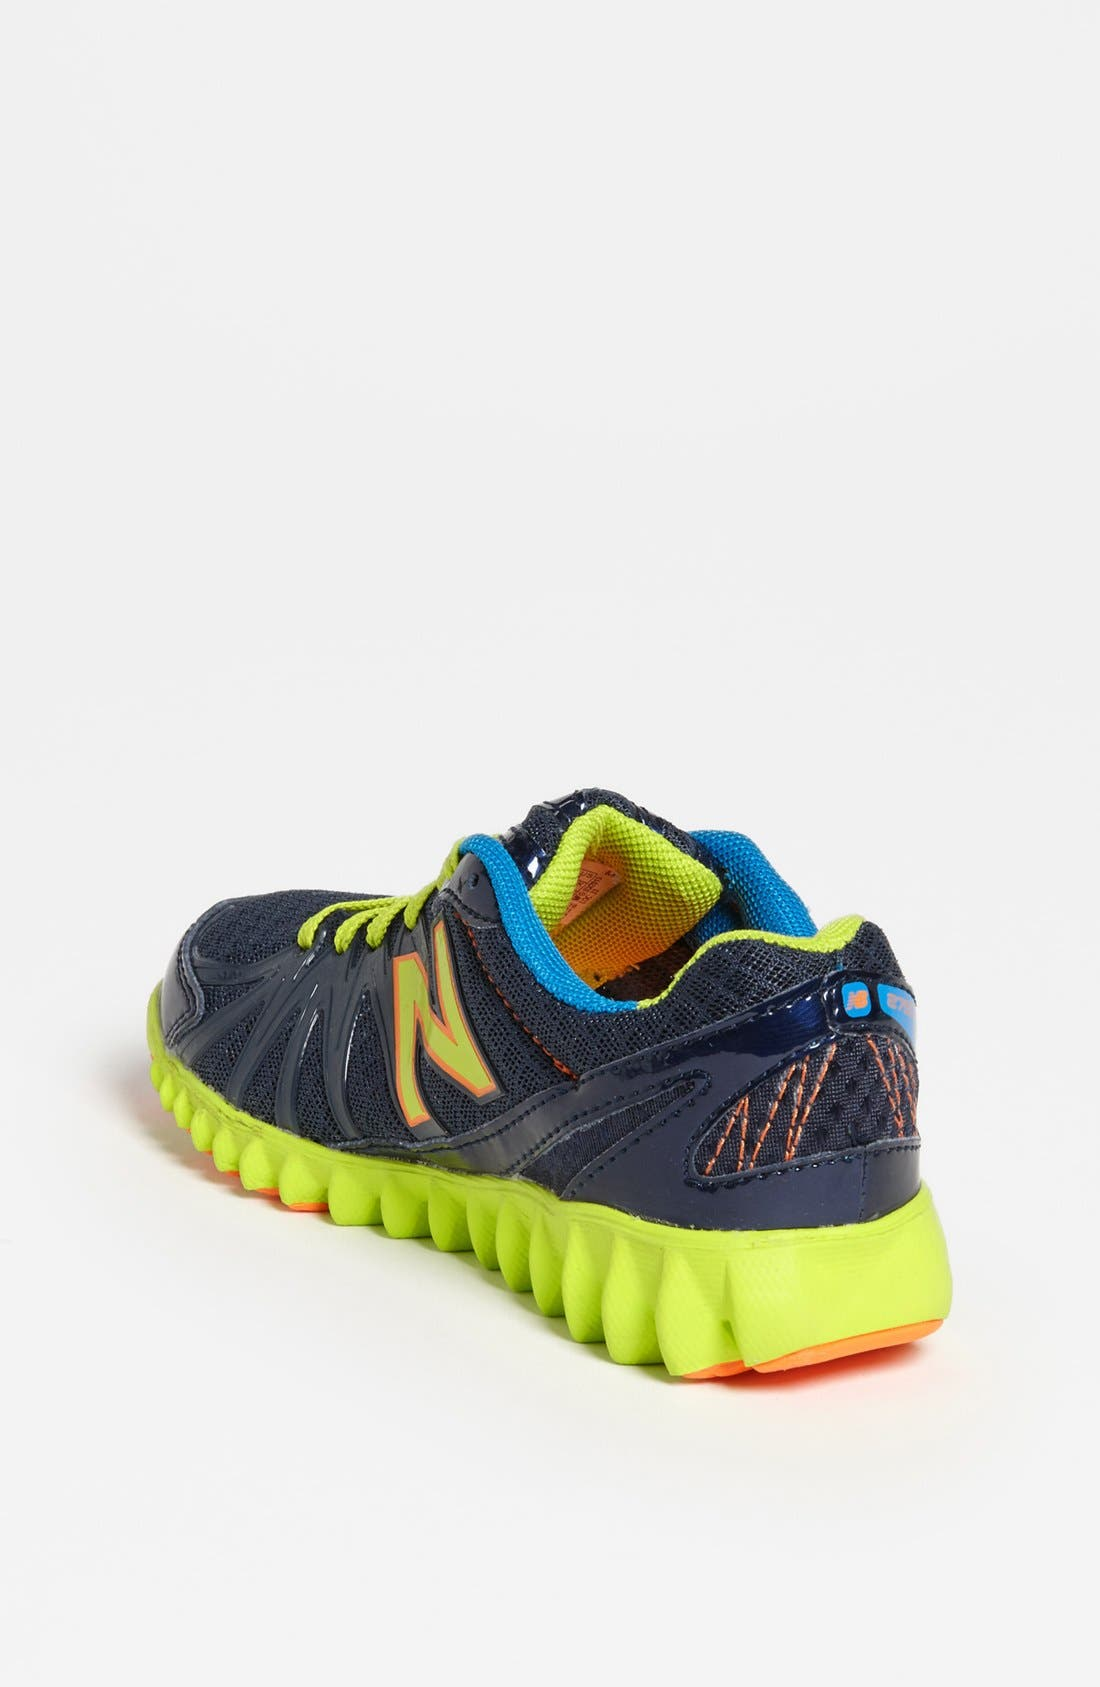 Alternate Image 2  - New Balance 'Takedown 2750' Running Shoe (Toddler, Little Kid & Big Kid)